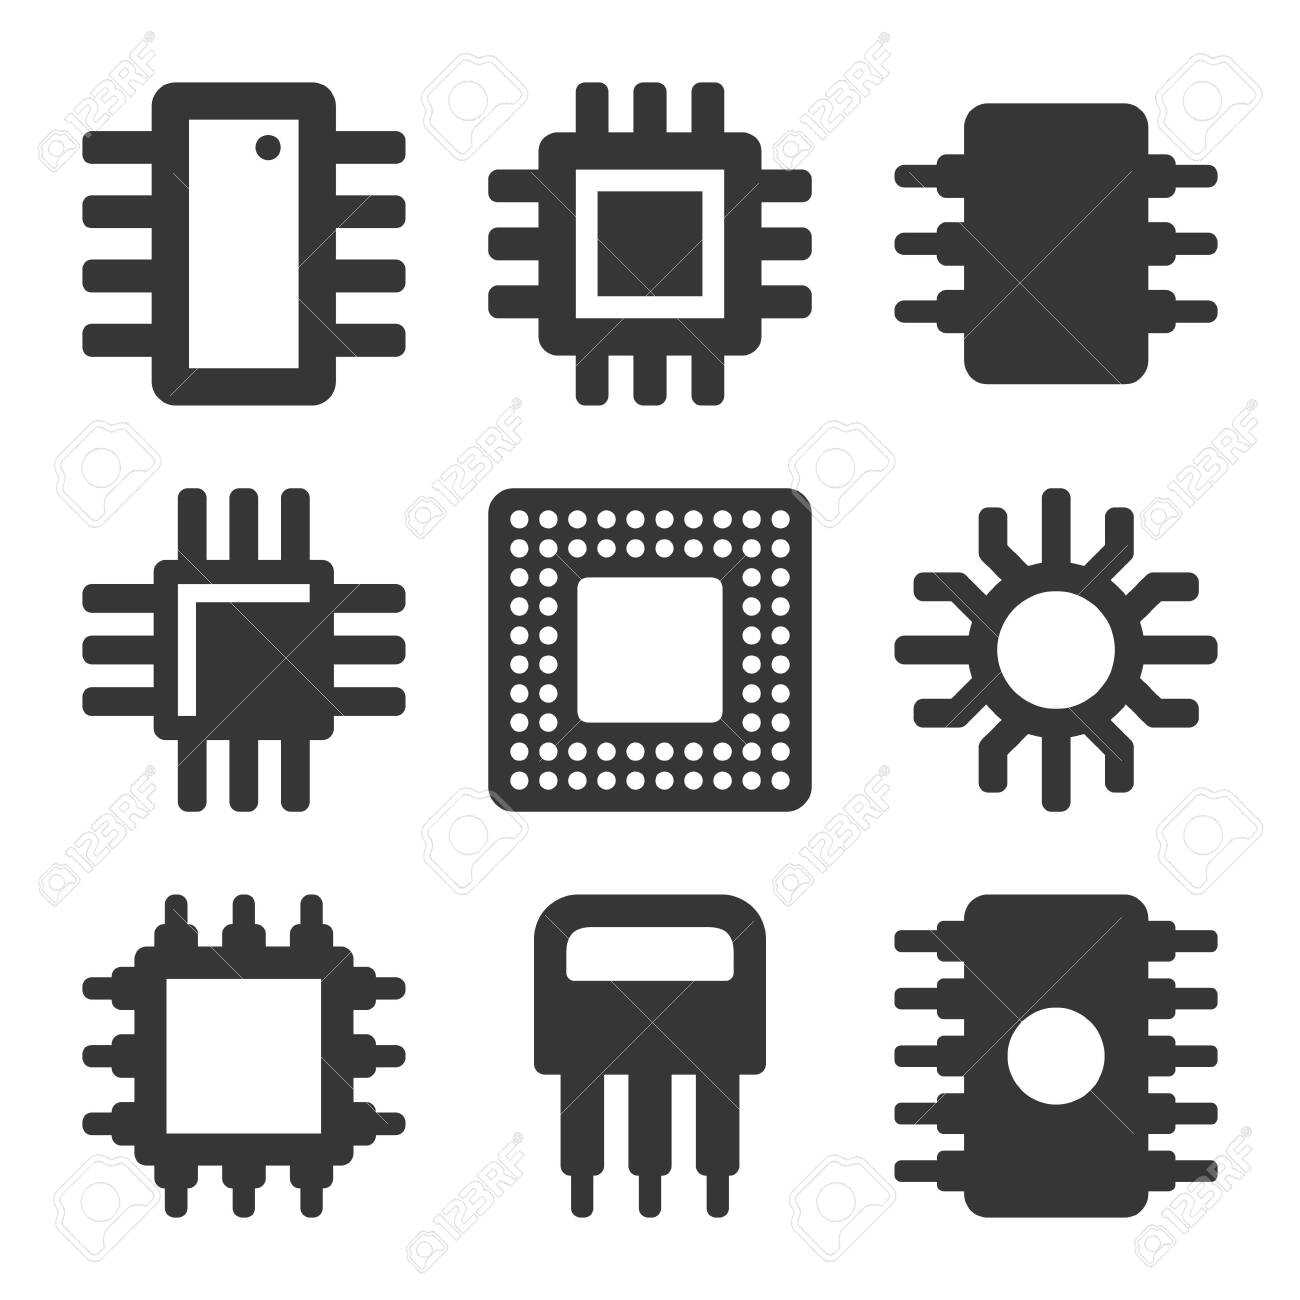 Electronic Computer CPU Chip Icons Set. Vector - 135039978